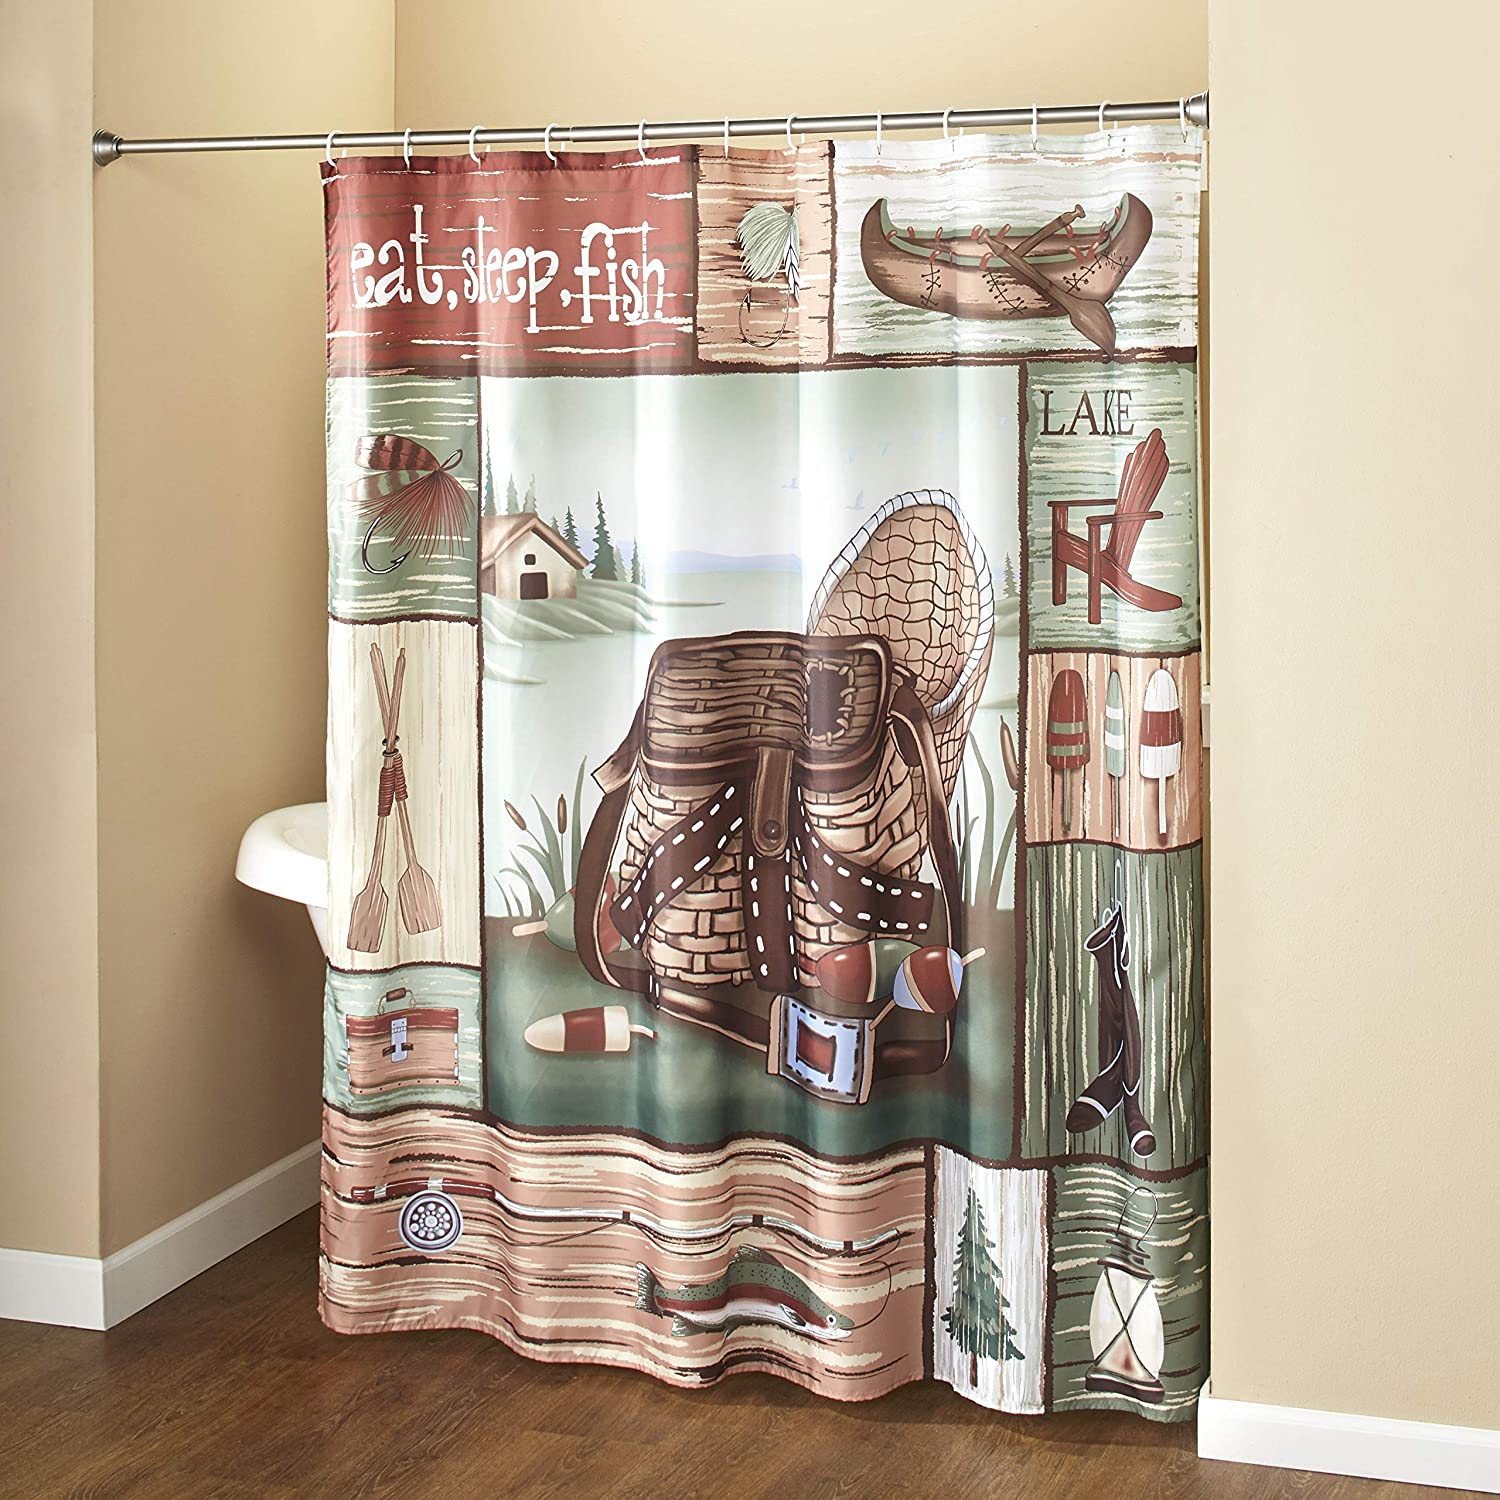 The Lakeside Collection Gone Fishing Shower Curtain with Hooks - Rustic Bathroom Decor